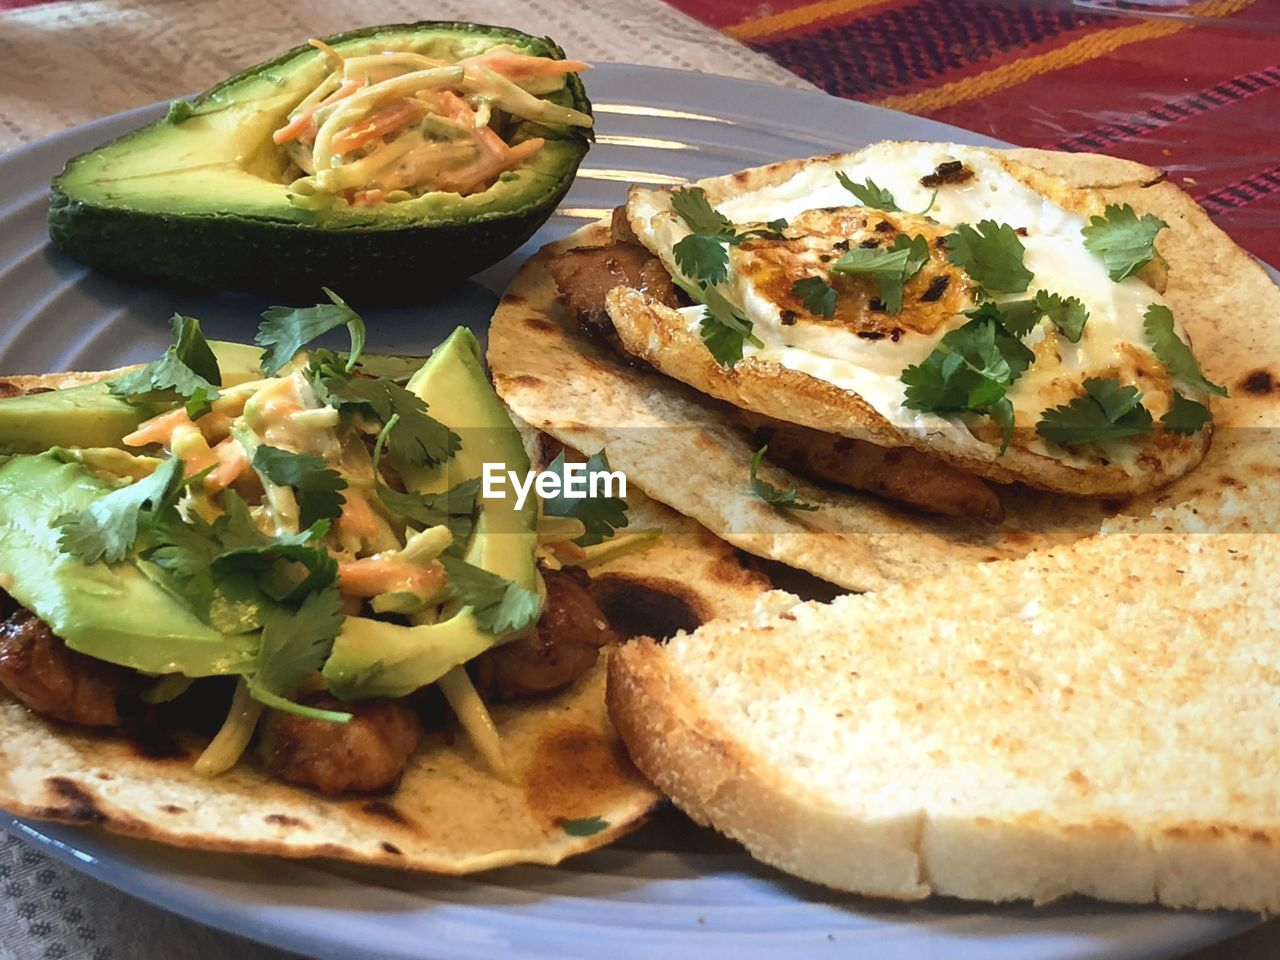 food and drink, food, freshness, plate, ready-to-eat, vegetable, healthy eating, no people, still life, fruit, mexican food, wellbeing, indoors, close-up, sandwich, avocado, tortilla chip, serving size, tortilla - flatbread, taco, meal, snack, vegetarian food, nacho chip, chopped